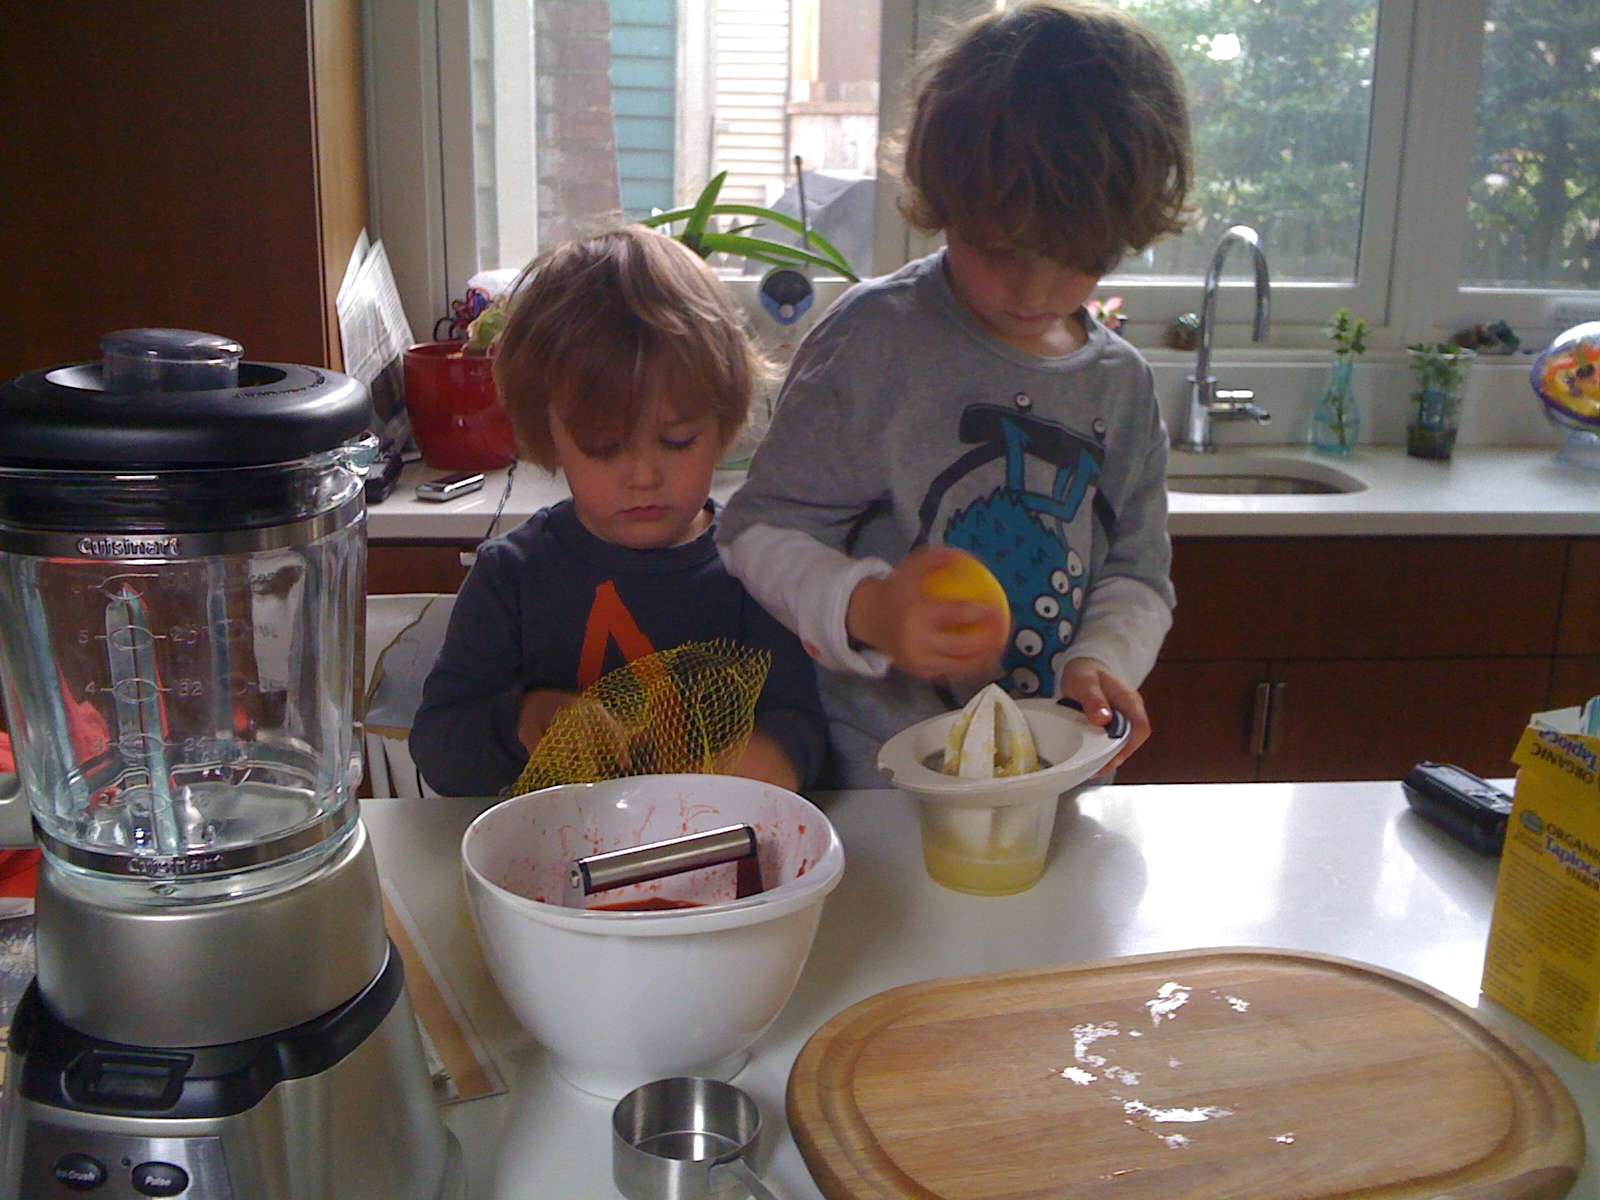 Kids Cooking - CookingCoOp.com